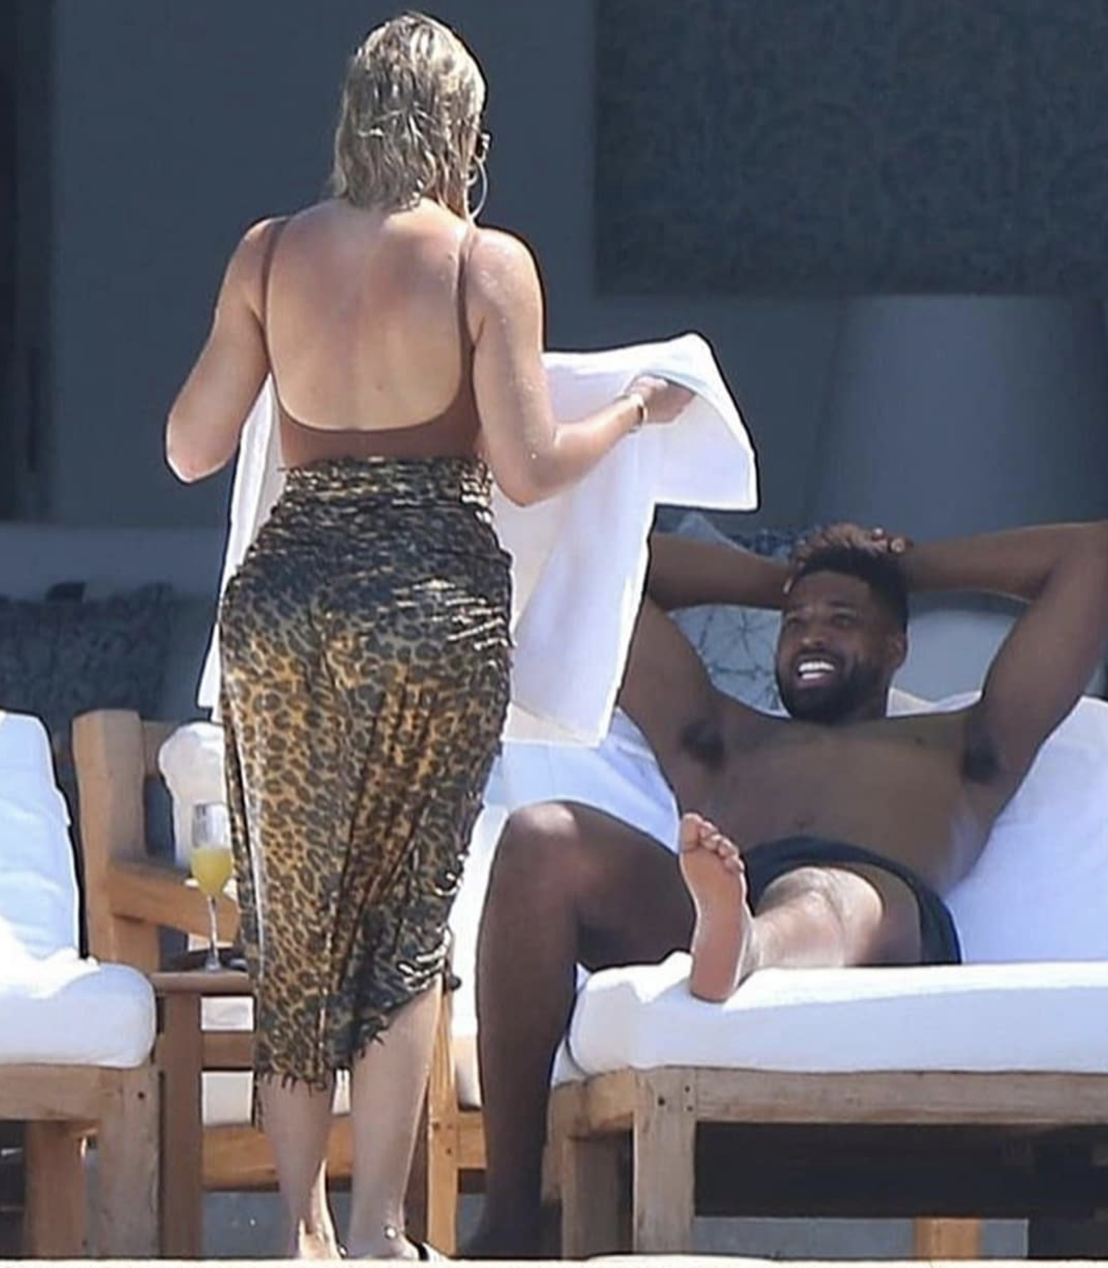 Khloe Kardashian and Tristan Thompson Vacationing in Mexico